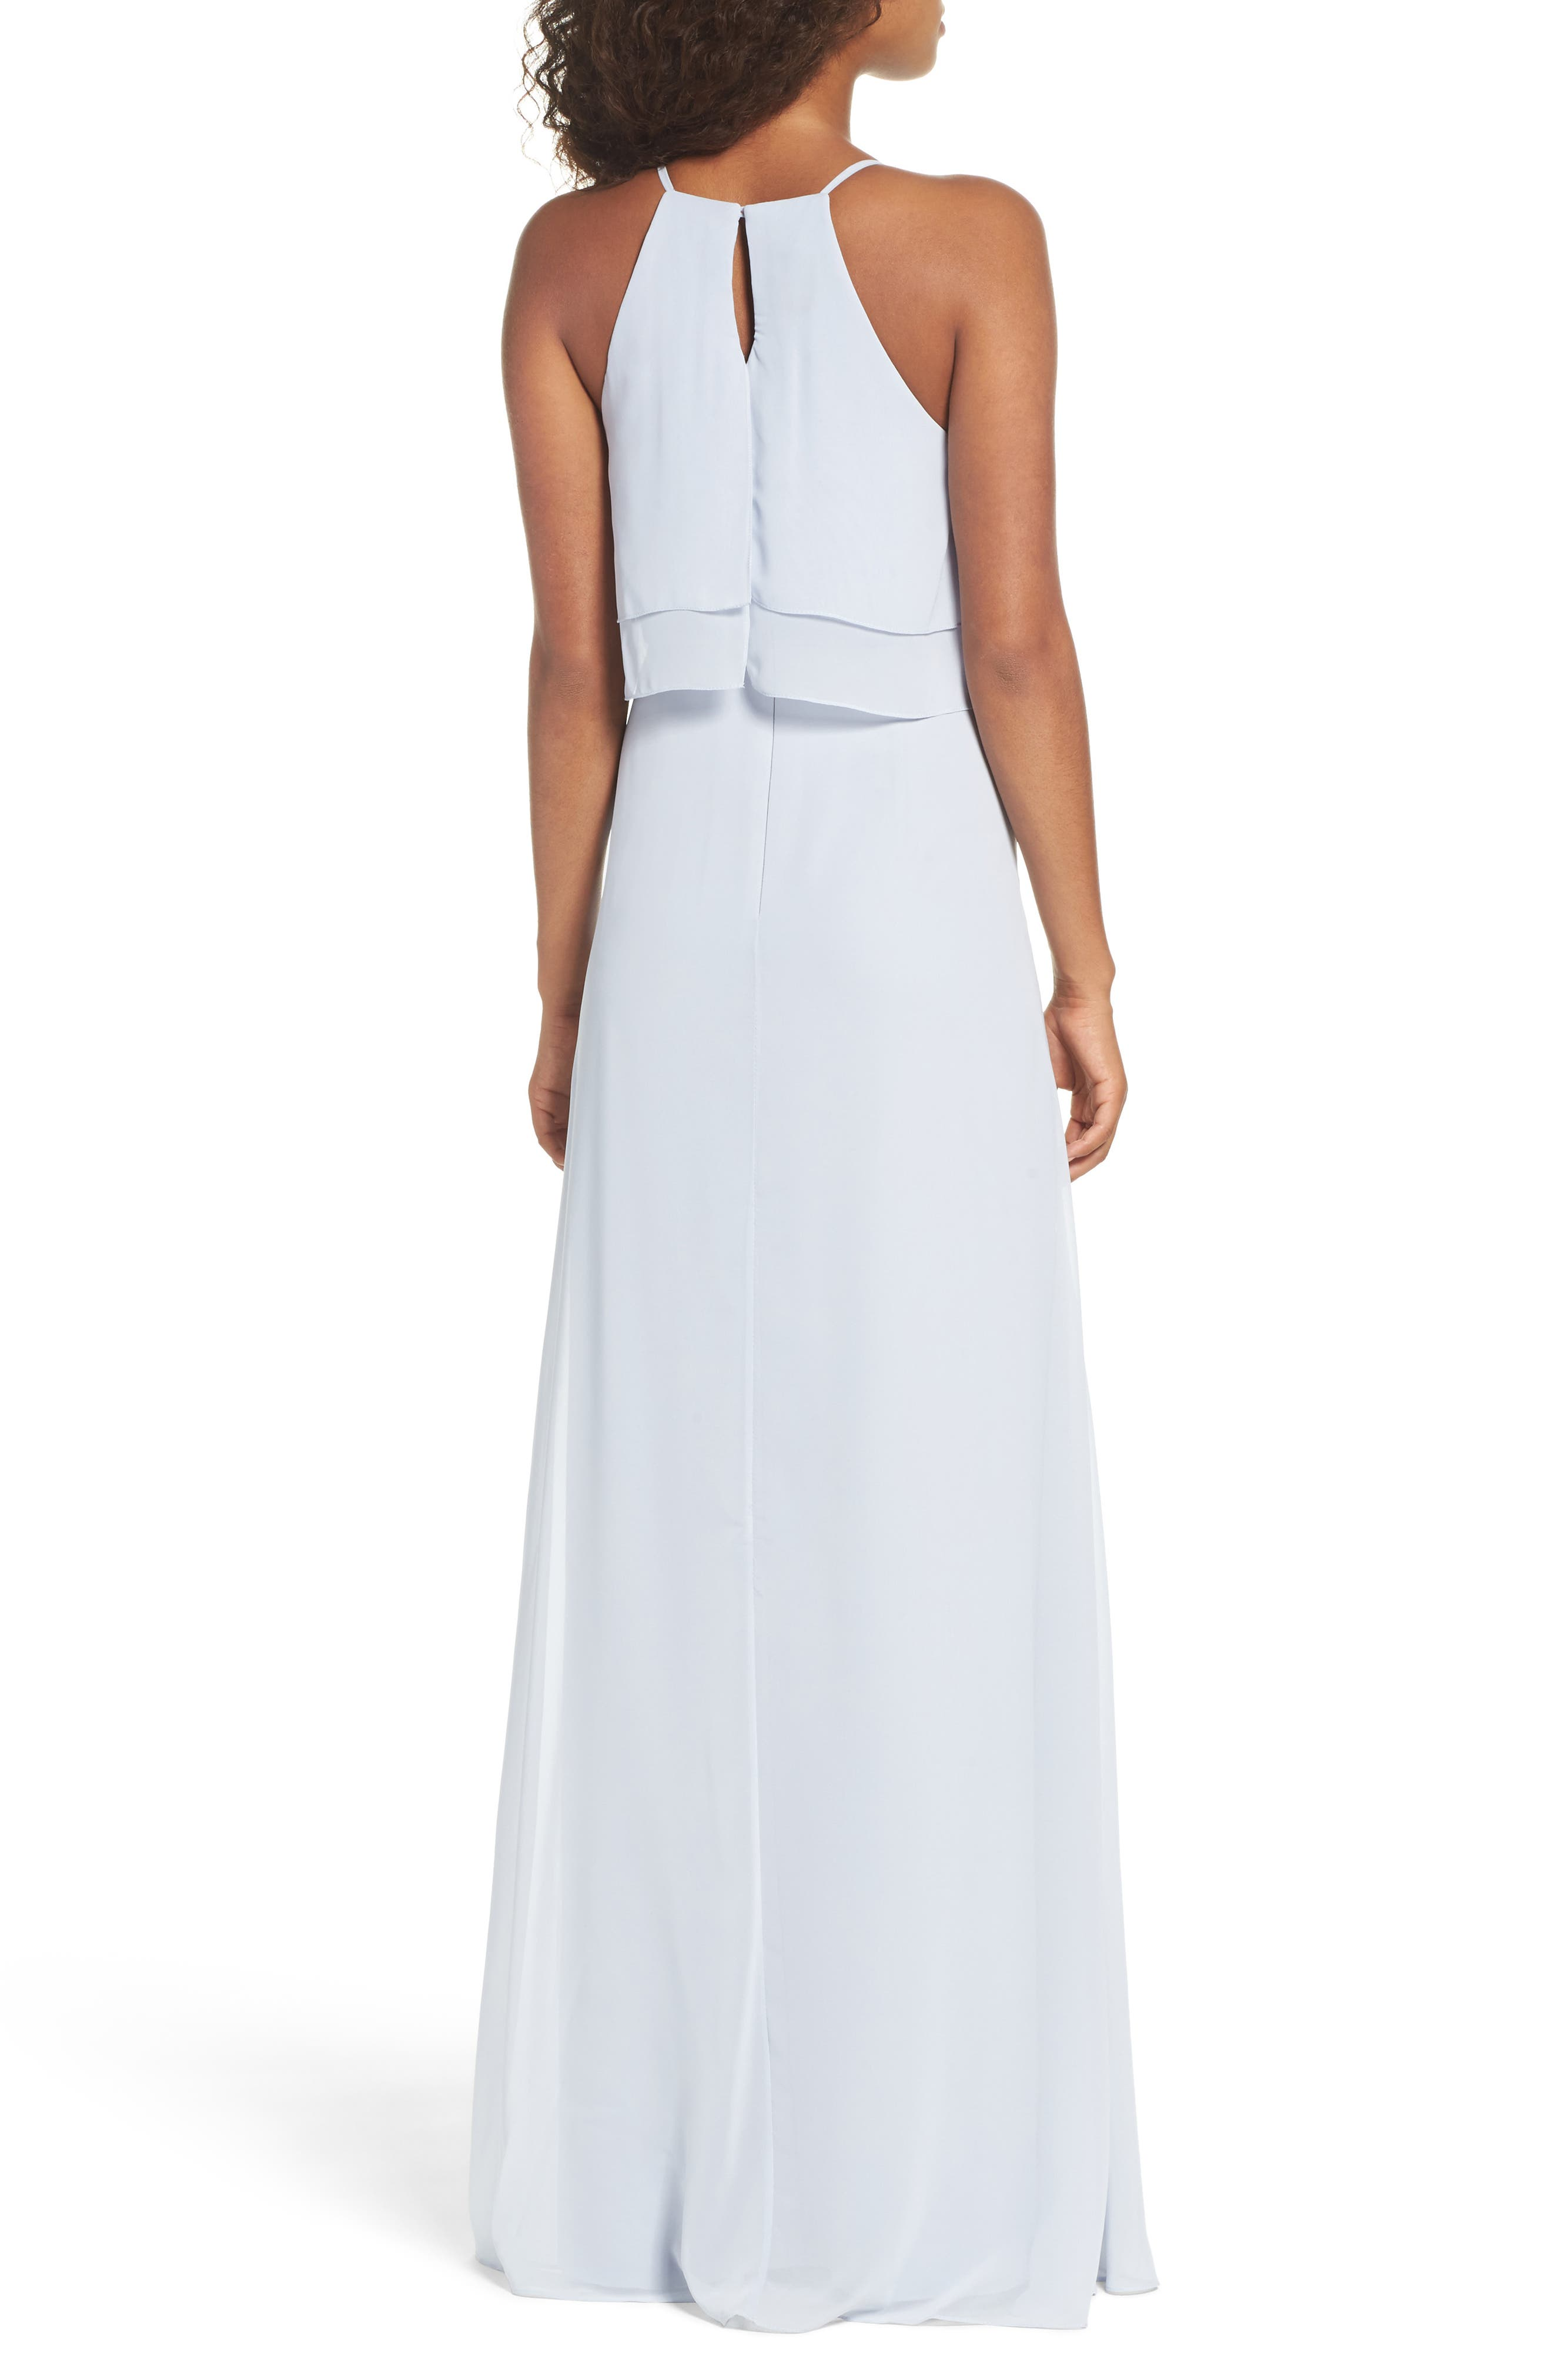 Charlie Ruffle Bodice Gown,                             Alternate thumbnail 12, color,